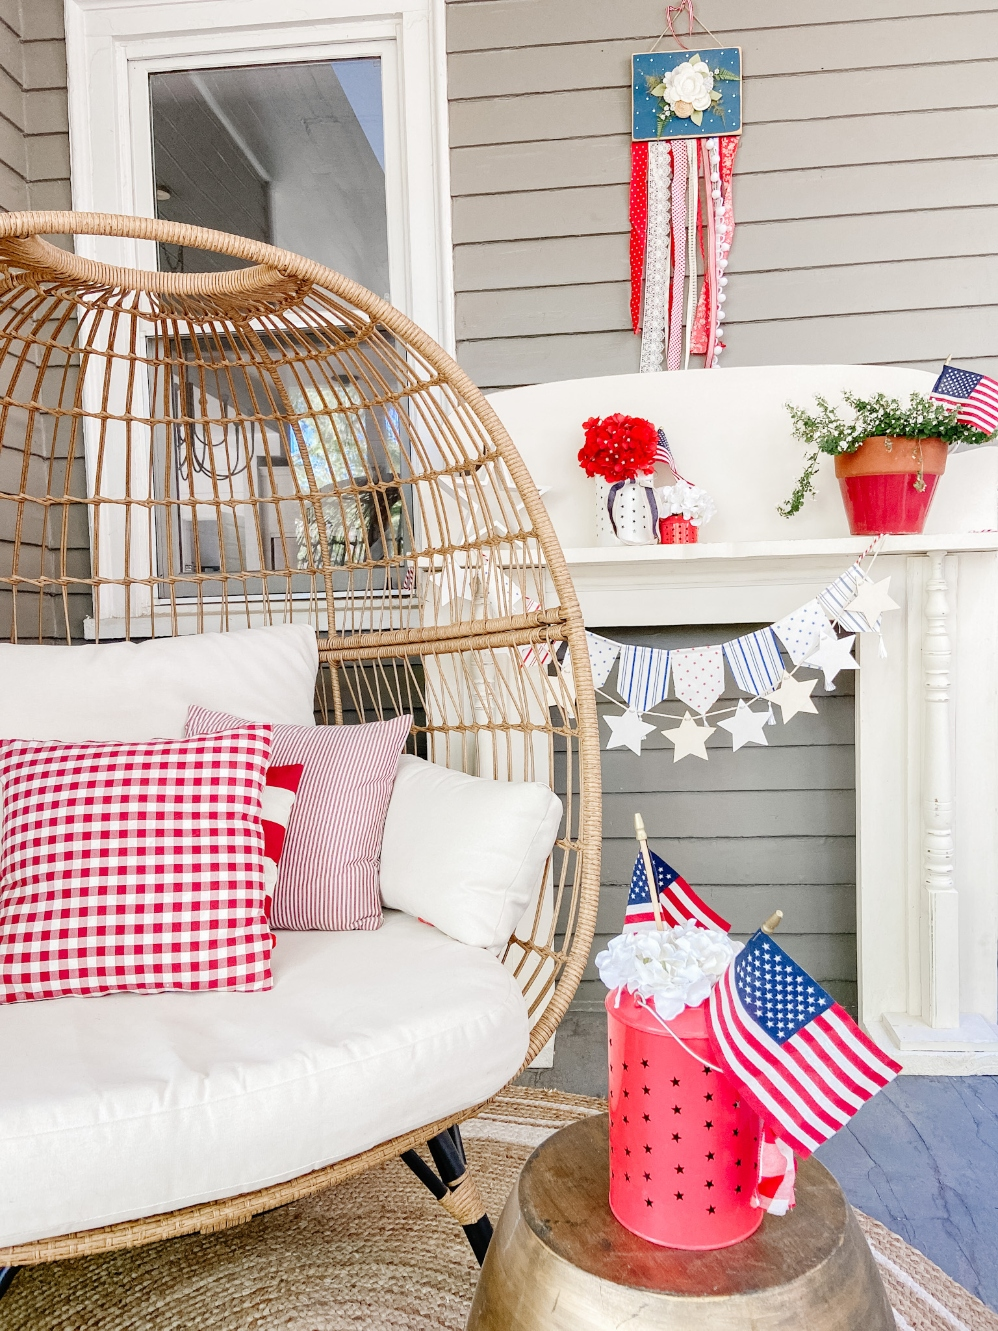 Patriotic Egg Chair on Porch